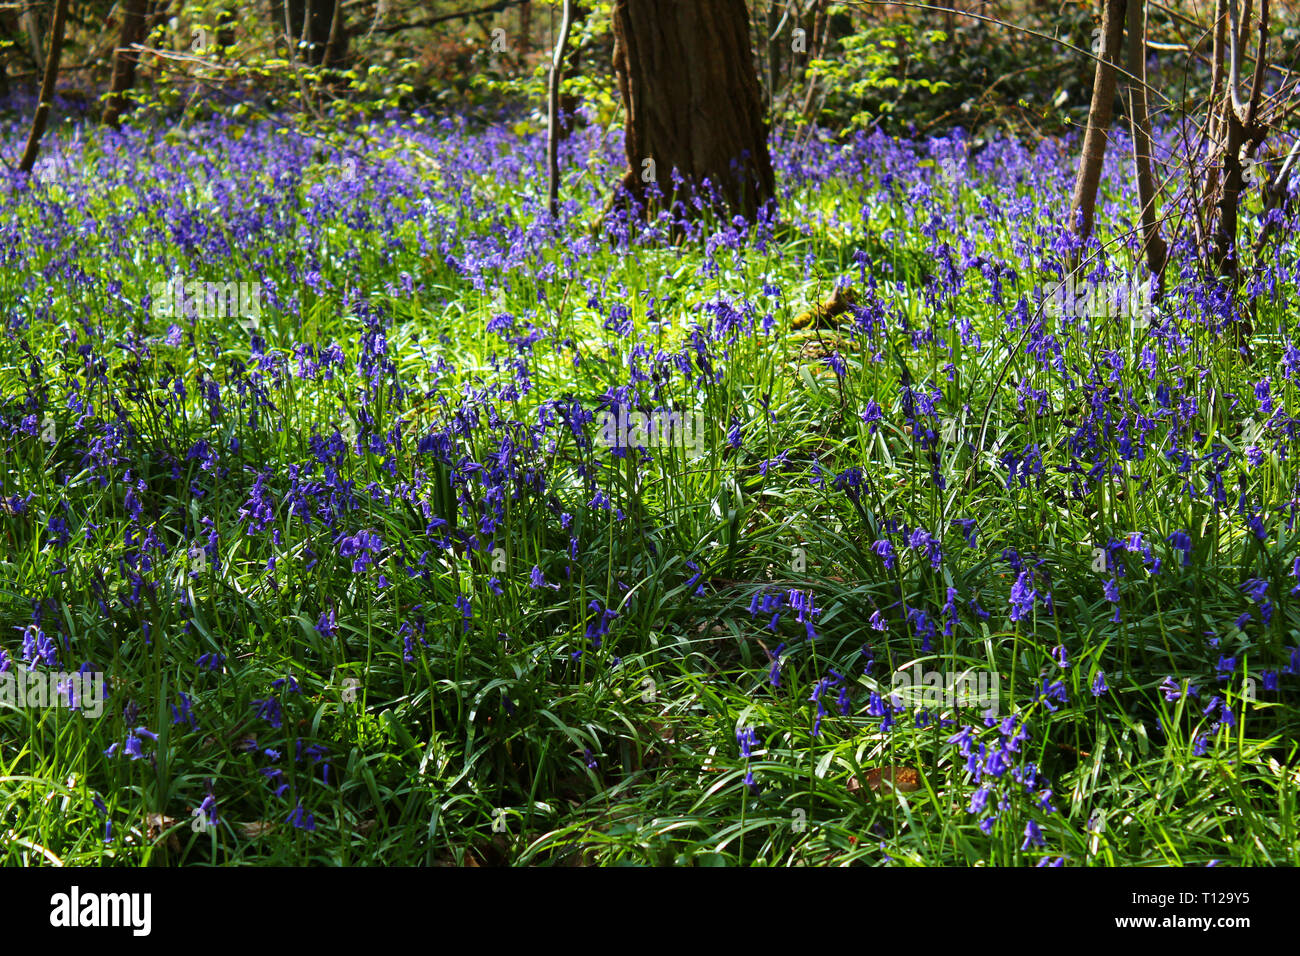 Bluebells in the spring of Orsay forest, France - Stock Image